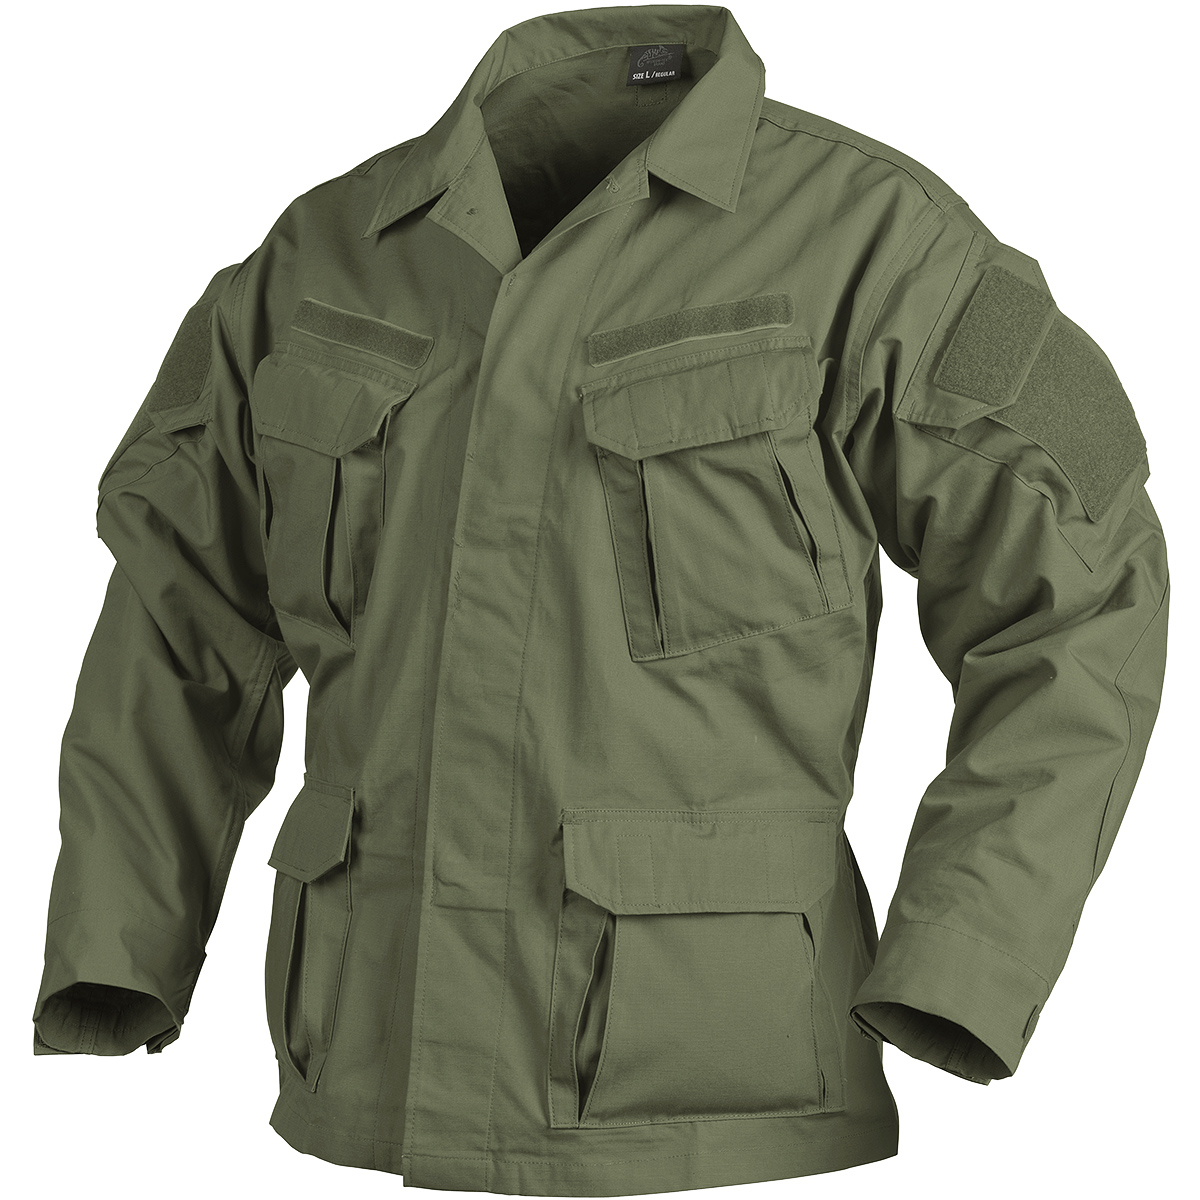 Helikon Sfu Next Military Cadet Uniform Shirt Mens Ripstop Jacket ...